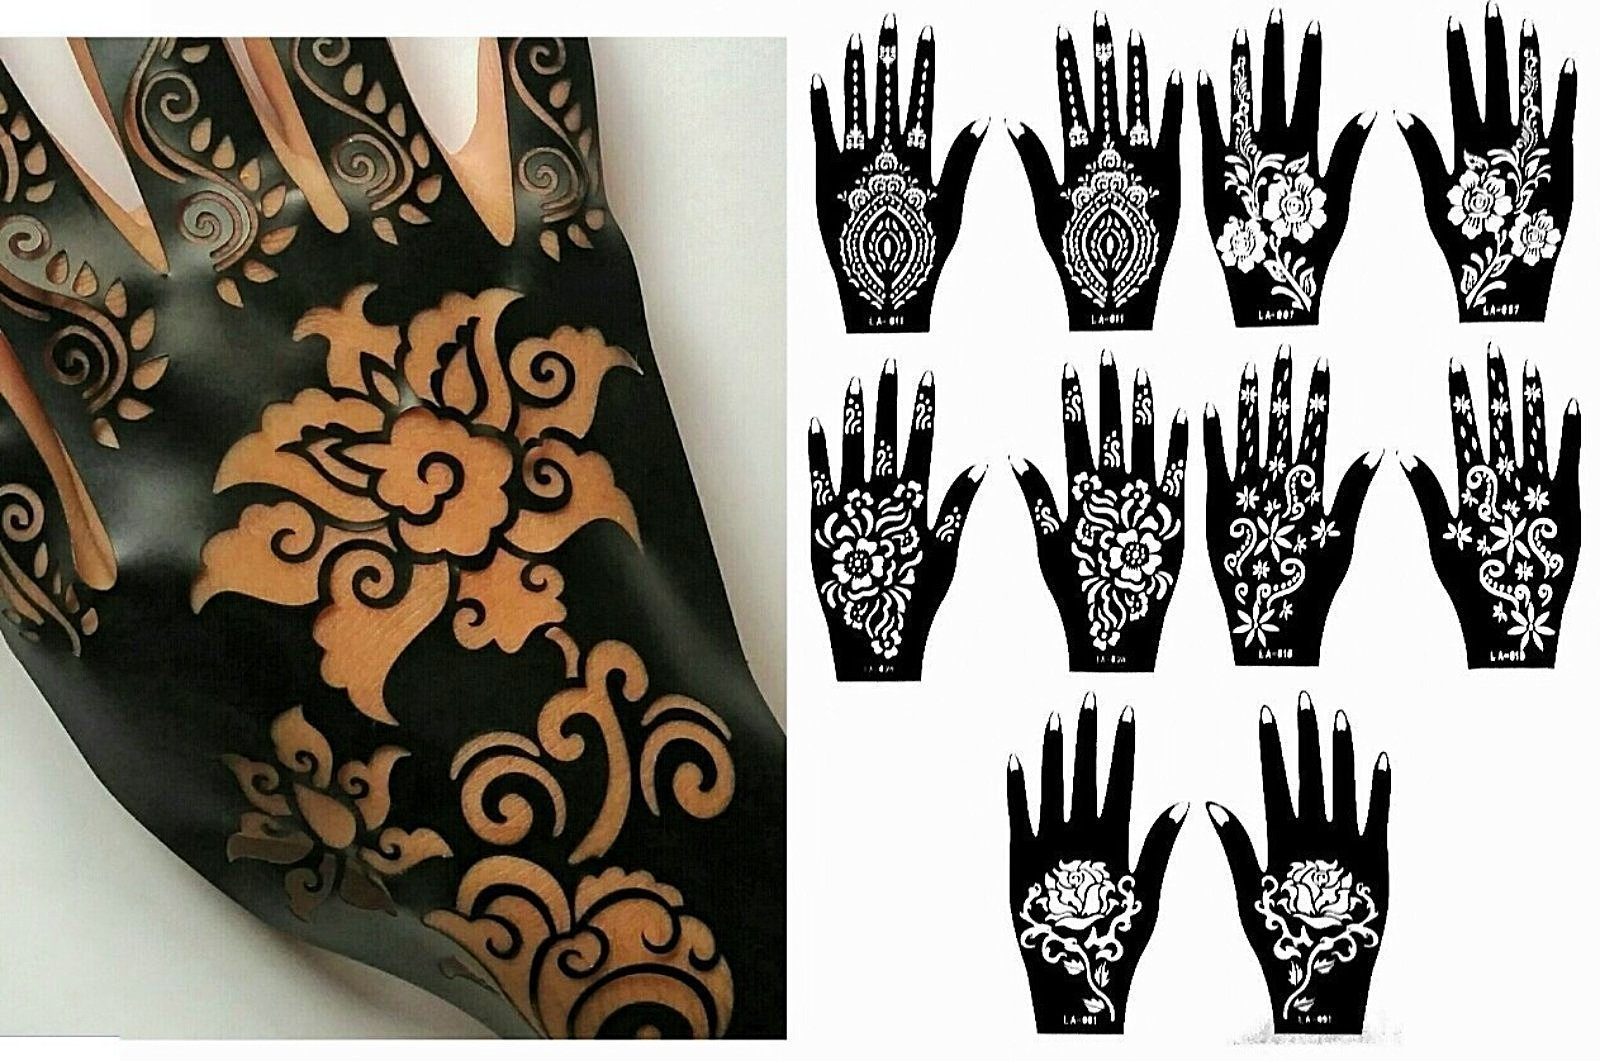 Henna Stencil Tattoo (10 Sheets) Self-Adhesive Beautiful Body Art Designs - Temporary Tattoo Templates